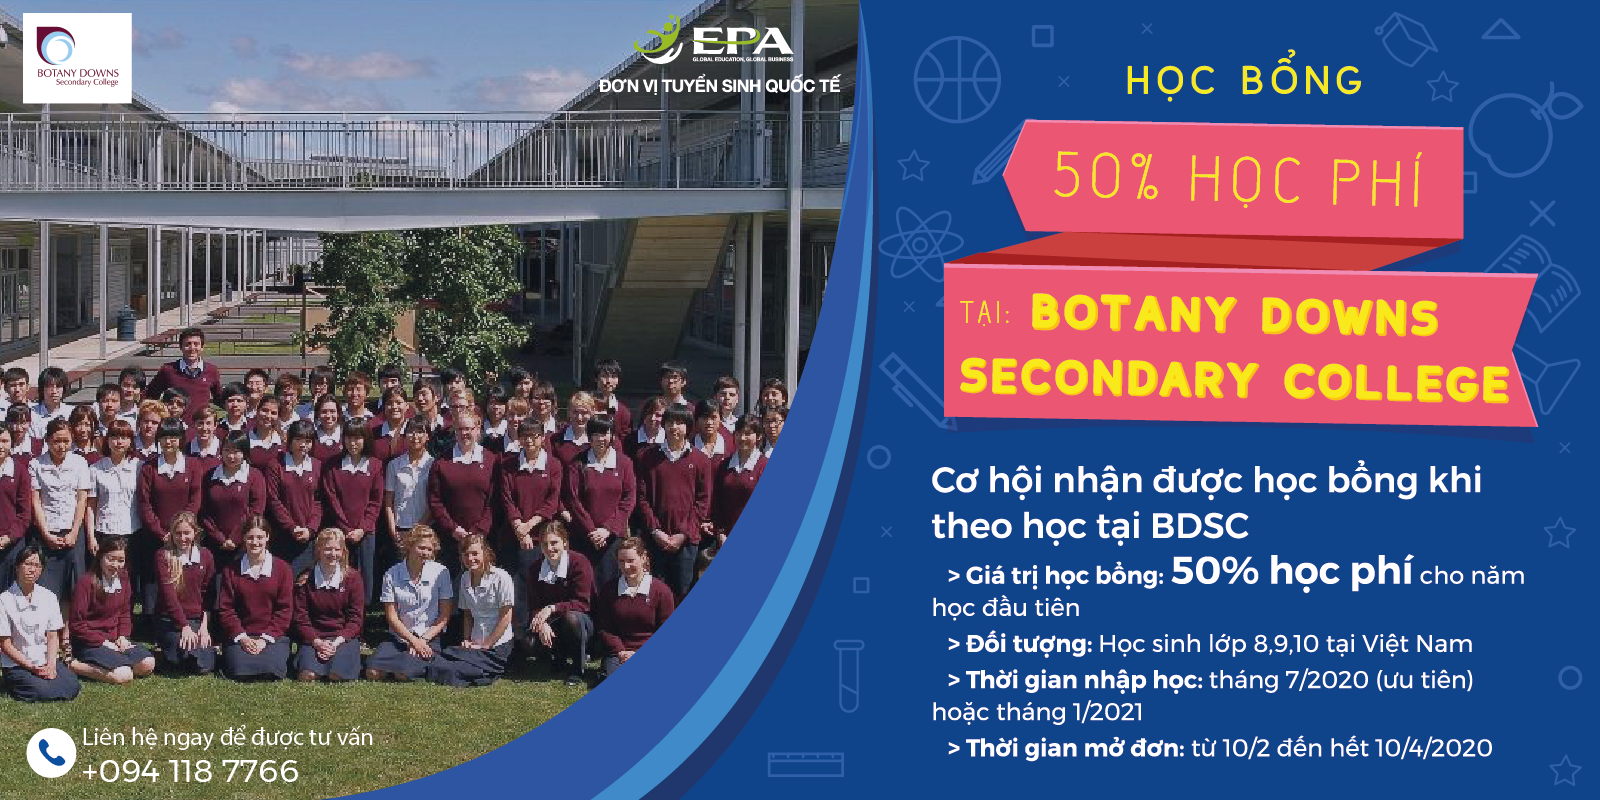 HỌC BỔNG DU HỌC TRUNG HỌC TẠI TRƯỜNG BOTANY DOWNS SECONDARY COLLEGE – AUCKLAND NEW ZEALAND